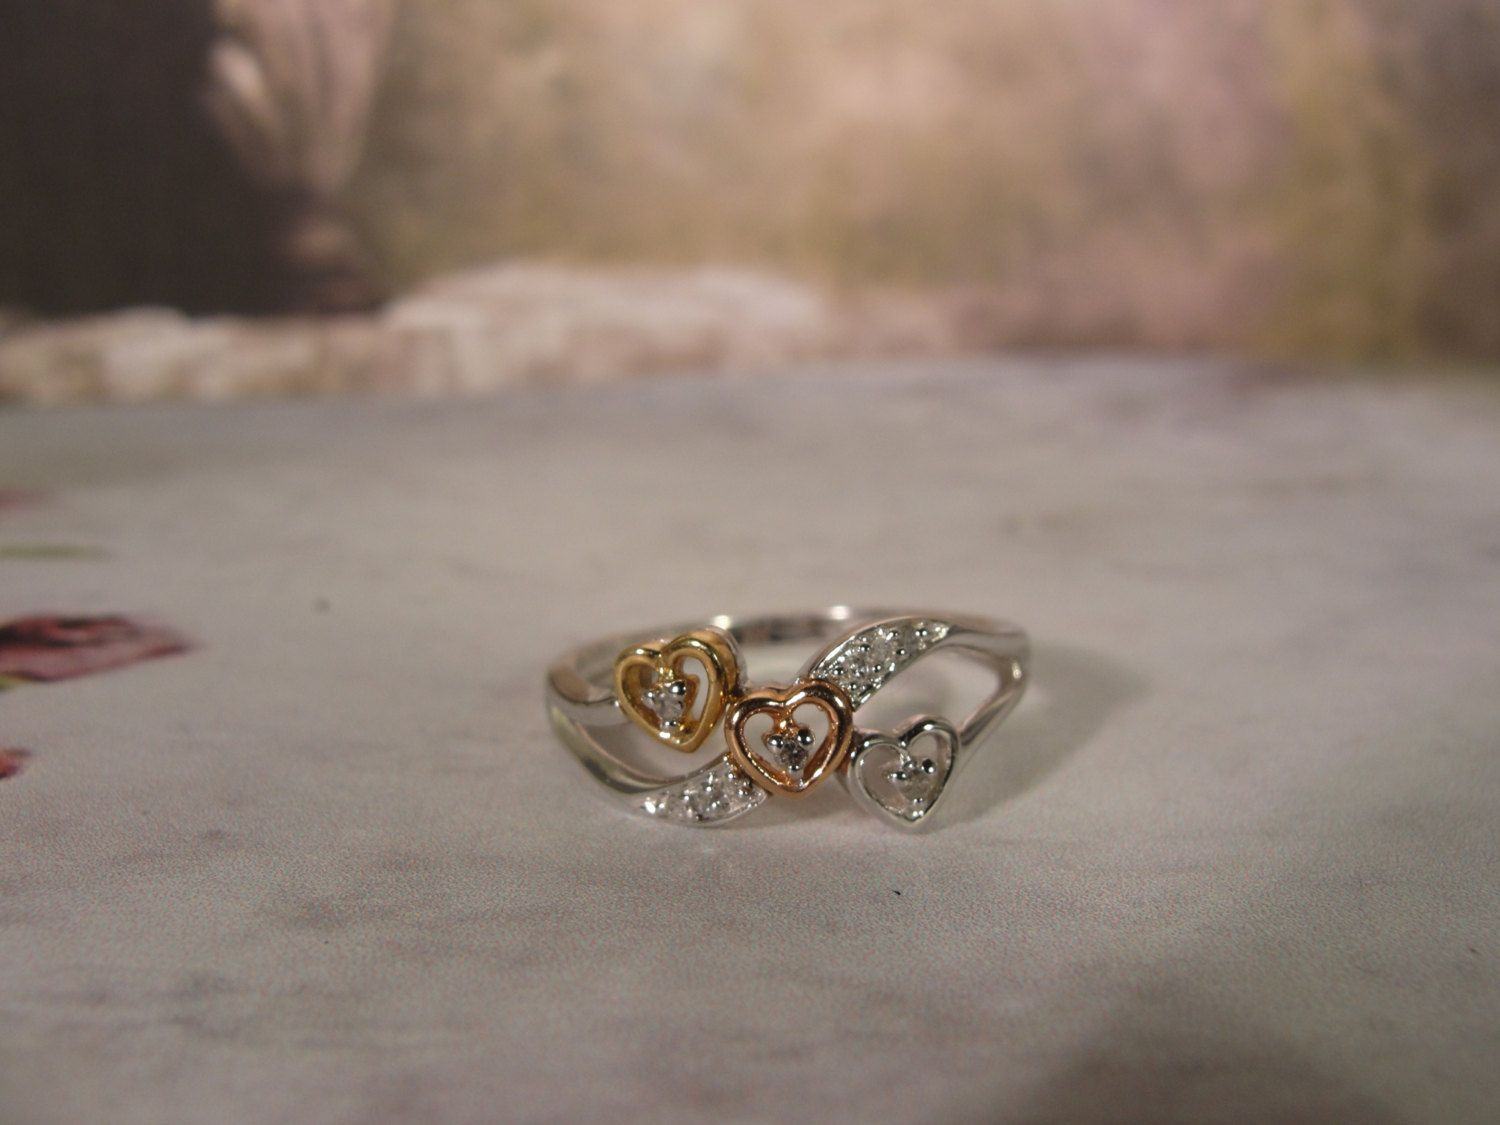 87d5e894c 10K SUN 3 Heart Promise or Pre-Engagement Ring with Yellow, Rose and White  Gold Hearts 9 Small Diamond Accent Stones Prong Set – Size 7 by ...